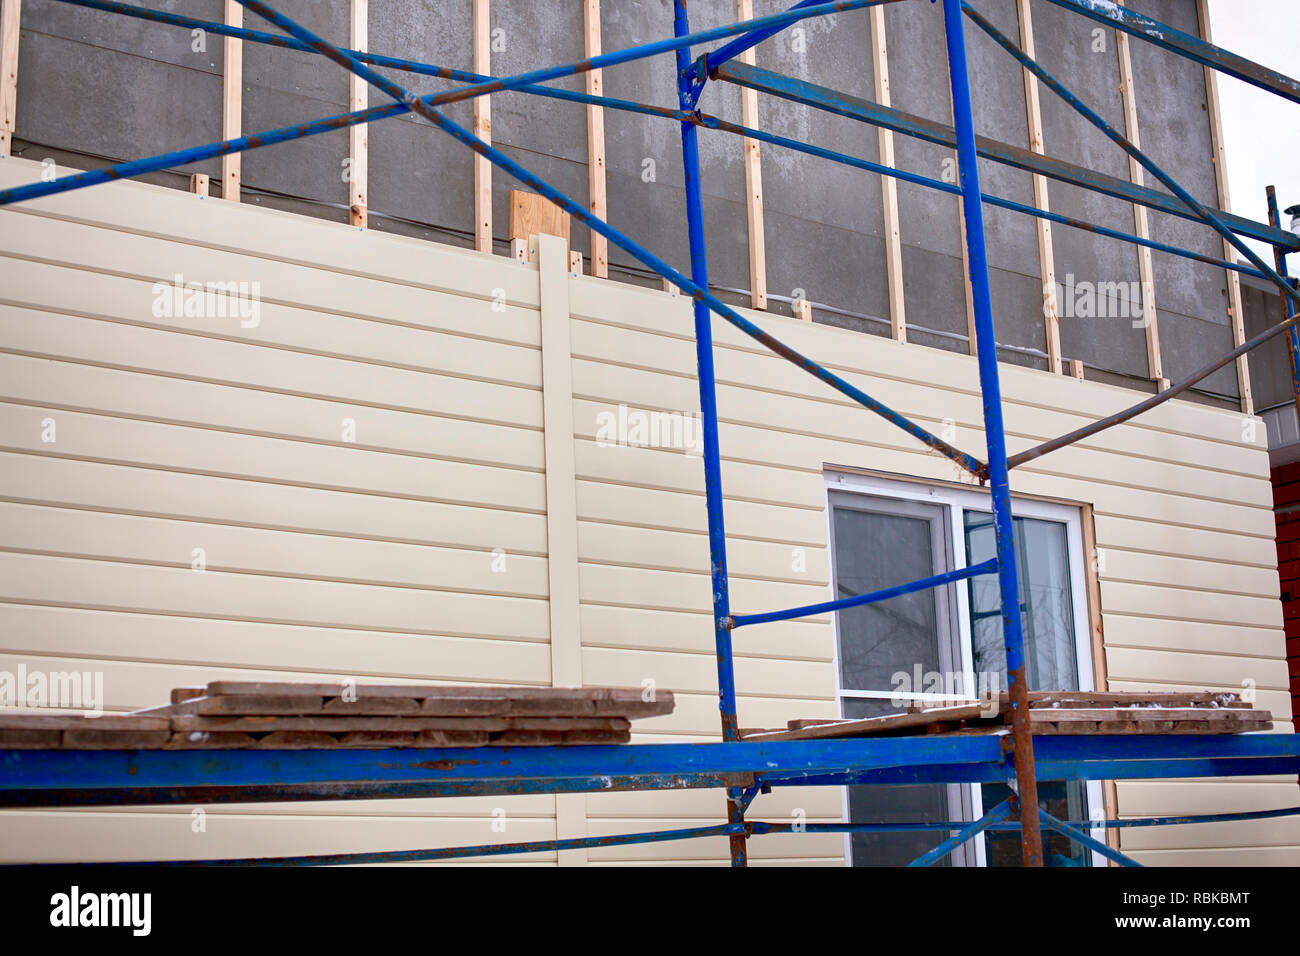 Scaffolding around house with beige siding covering the wall. Close-up. - Stock Image